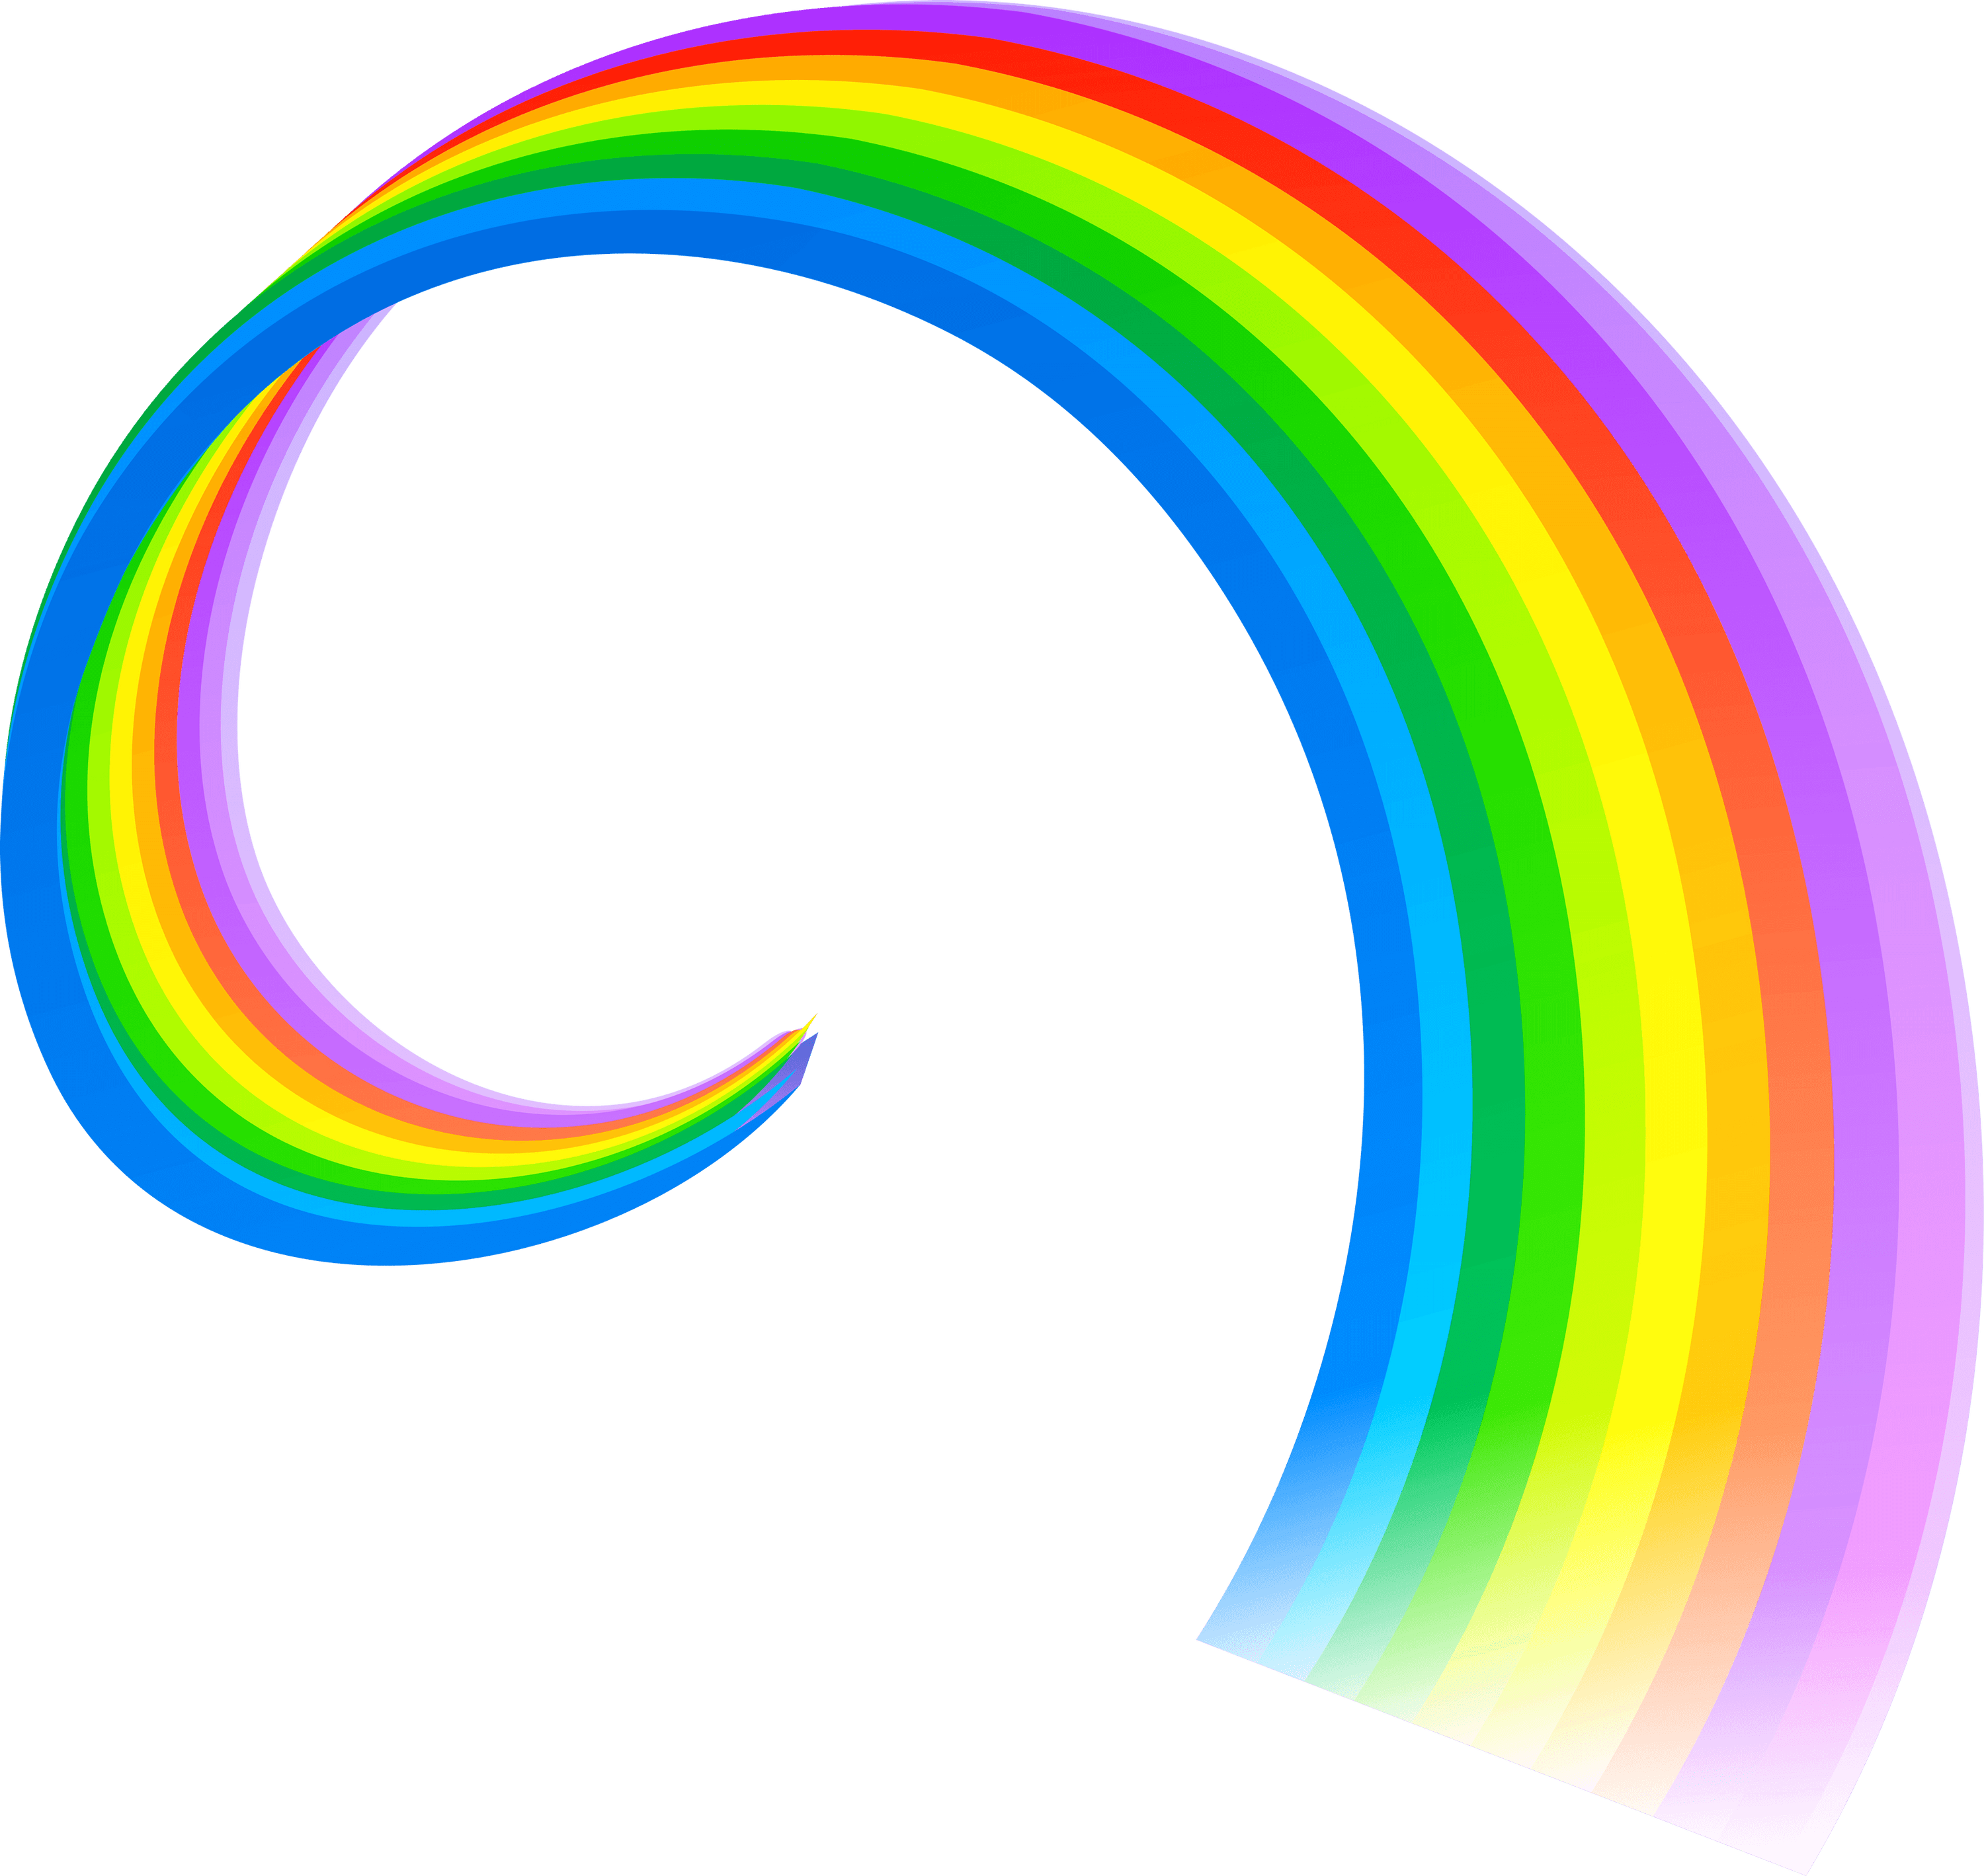 The Rainbow Png - nature · rainbows